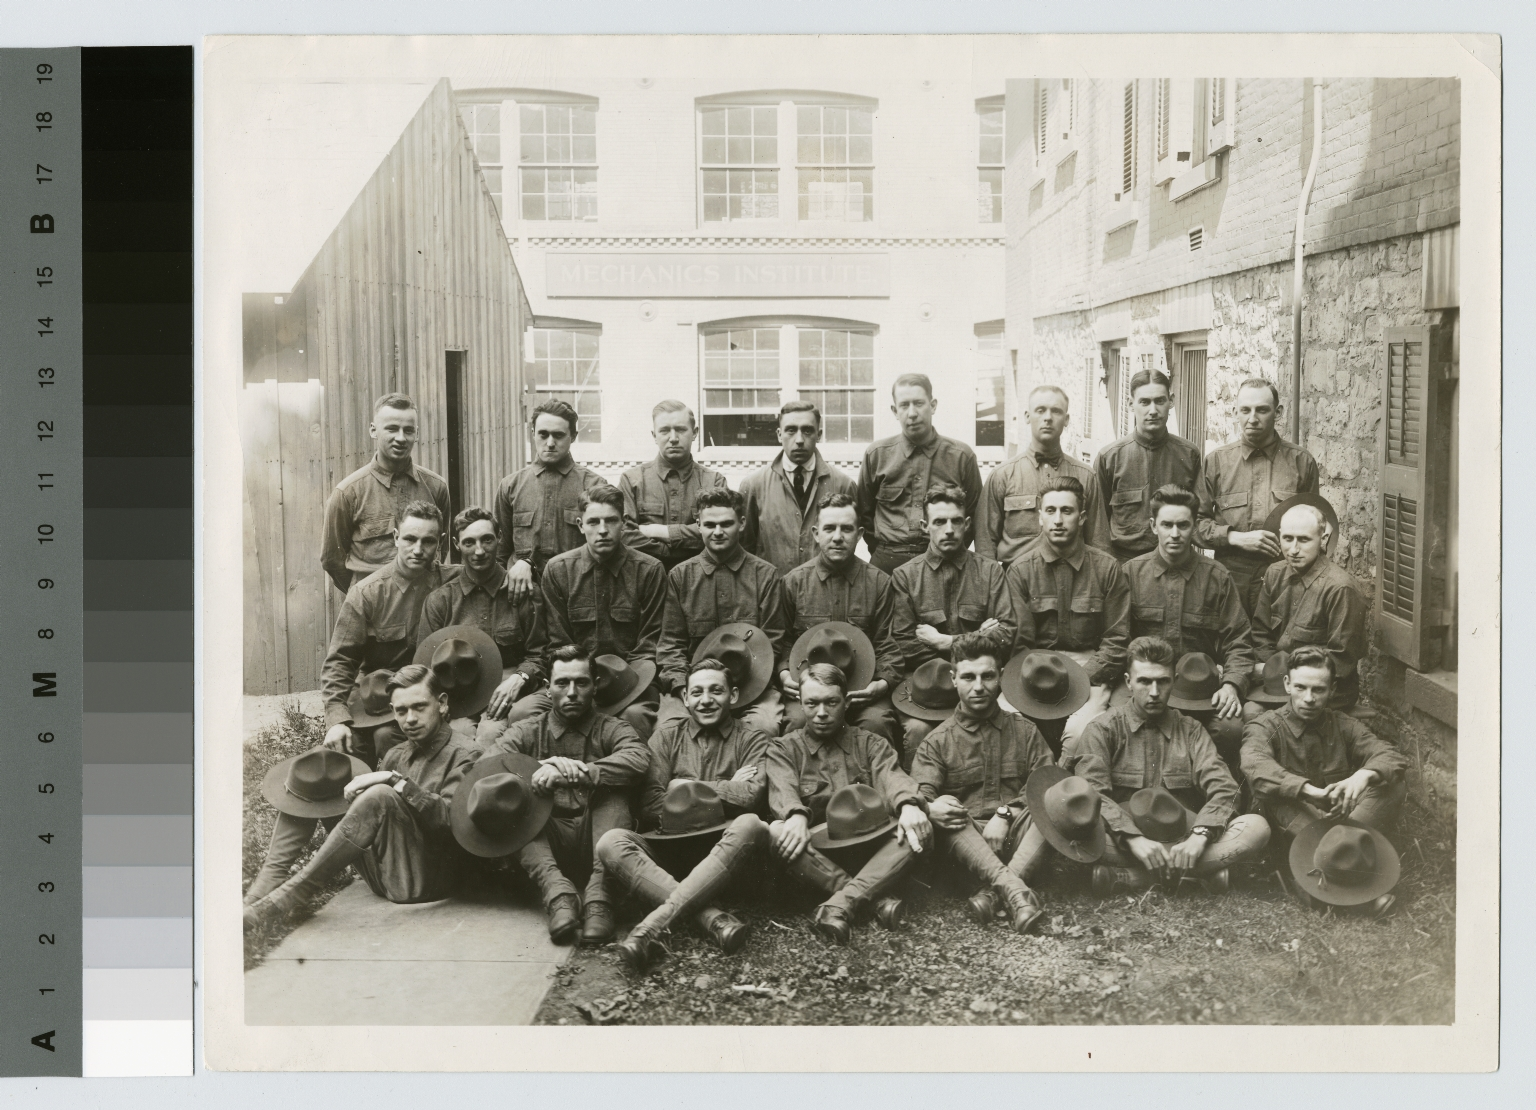 Portrait of World War I soldiers, Rochester Athenaeum and Mechanics Institute